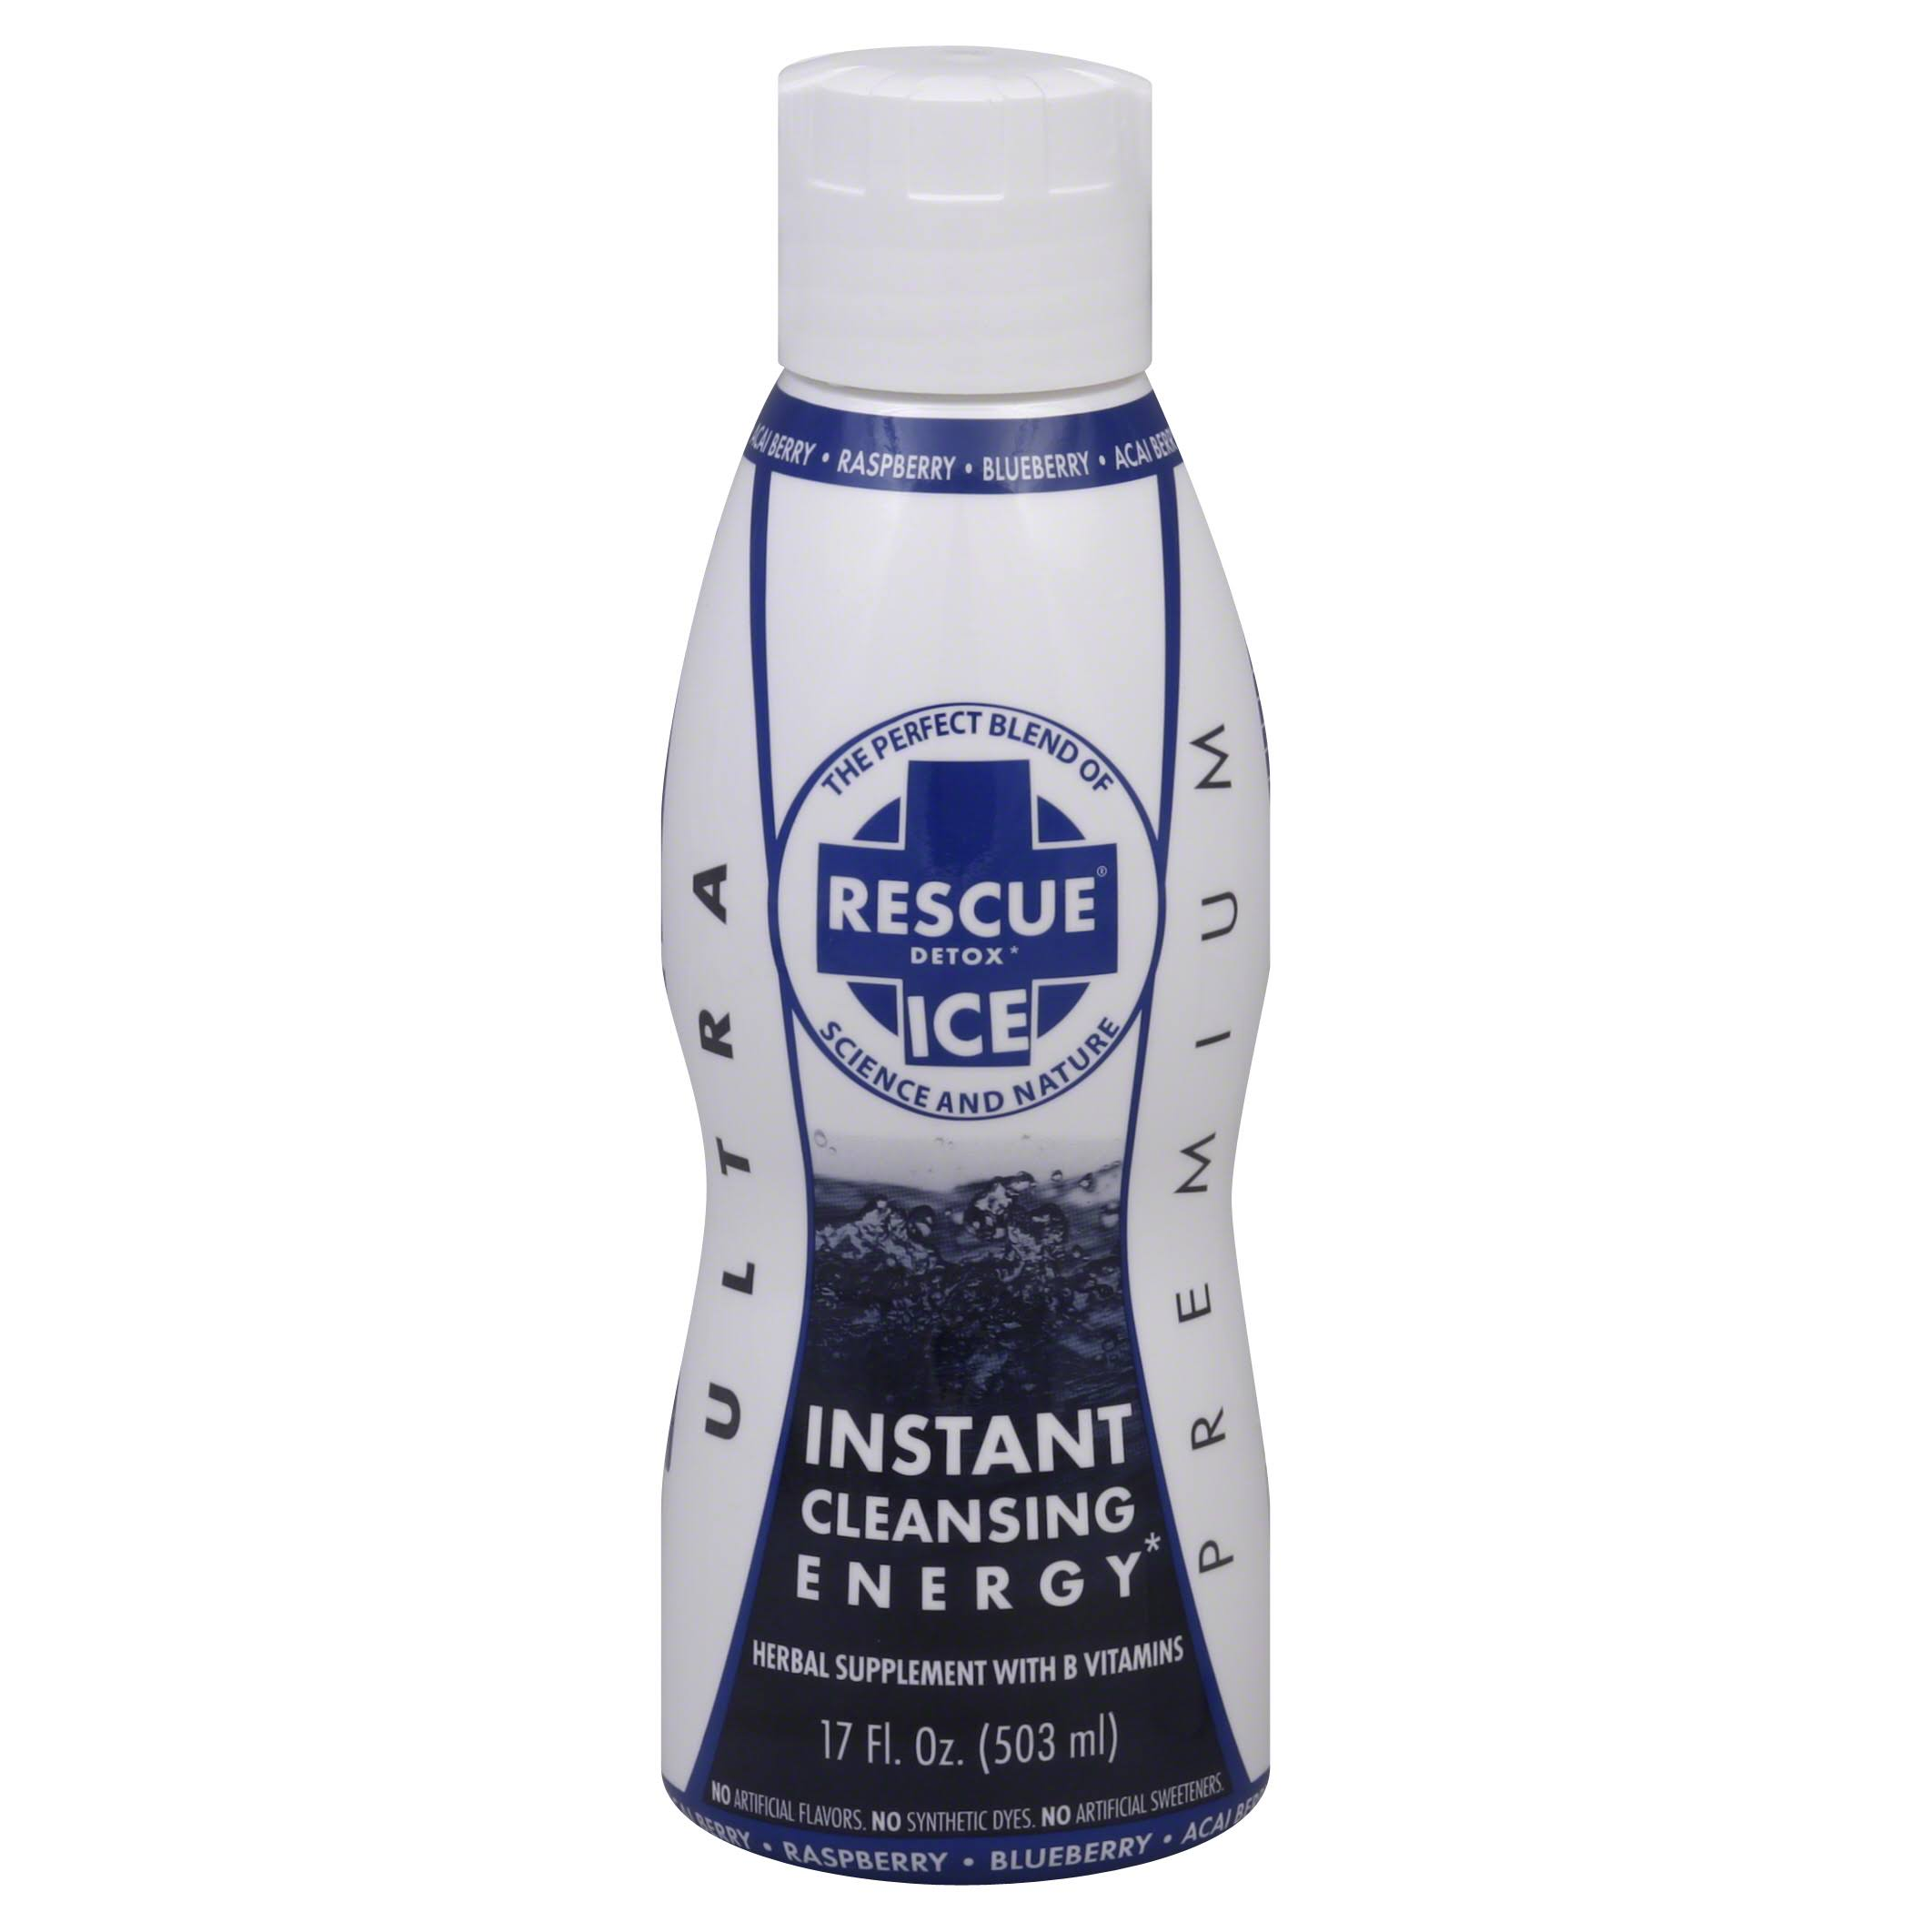 Rescue Ice Ultra Premium Instant Cleansing Energy, Acai Berry, Raspberry, Blueberry - 17 fl oz